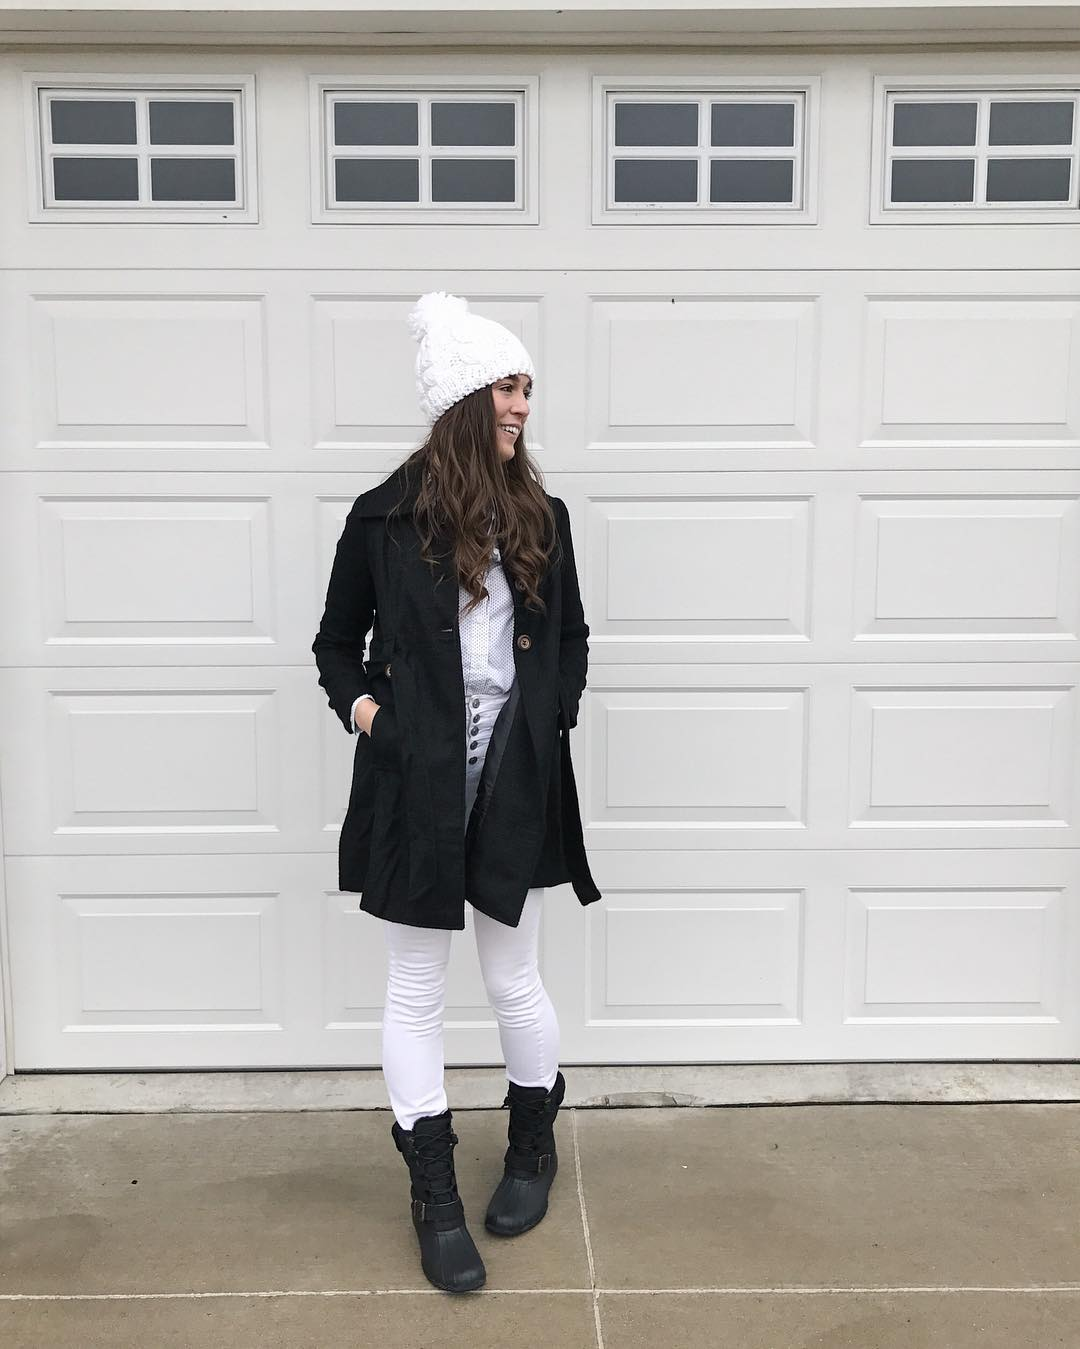 Classic White High Waist Jeans, White Shirt With Black Coat And Woollen Coat